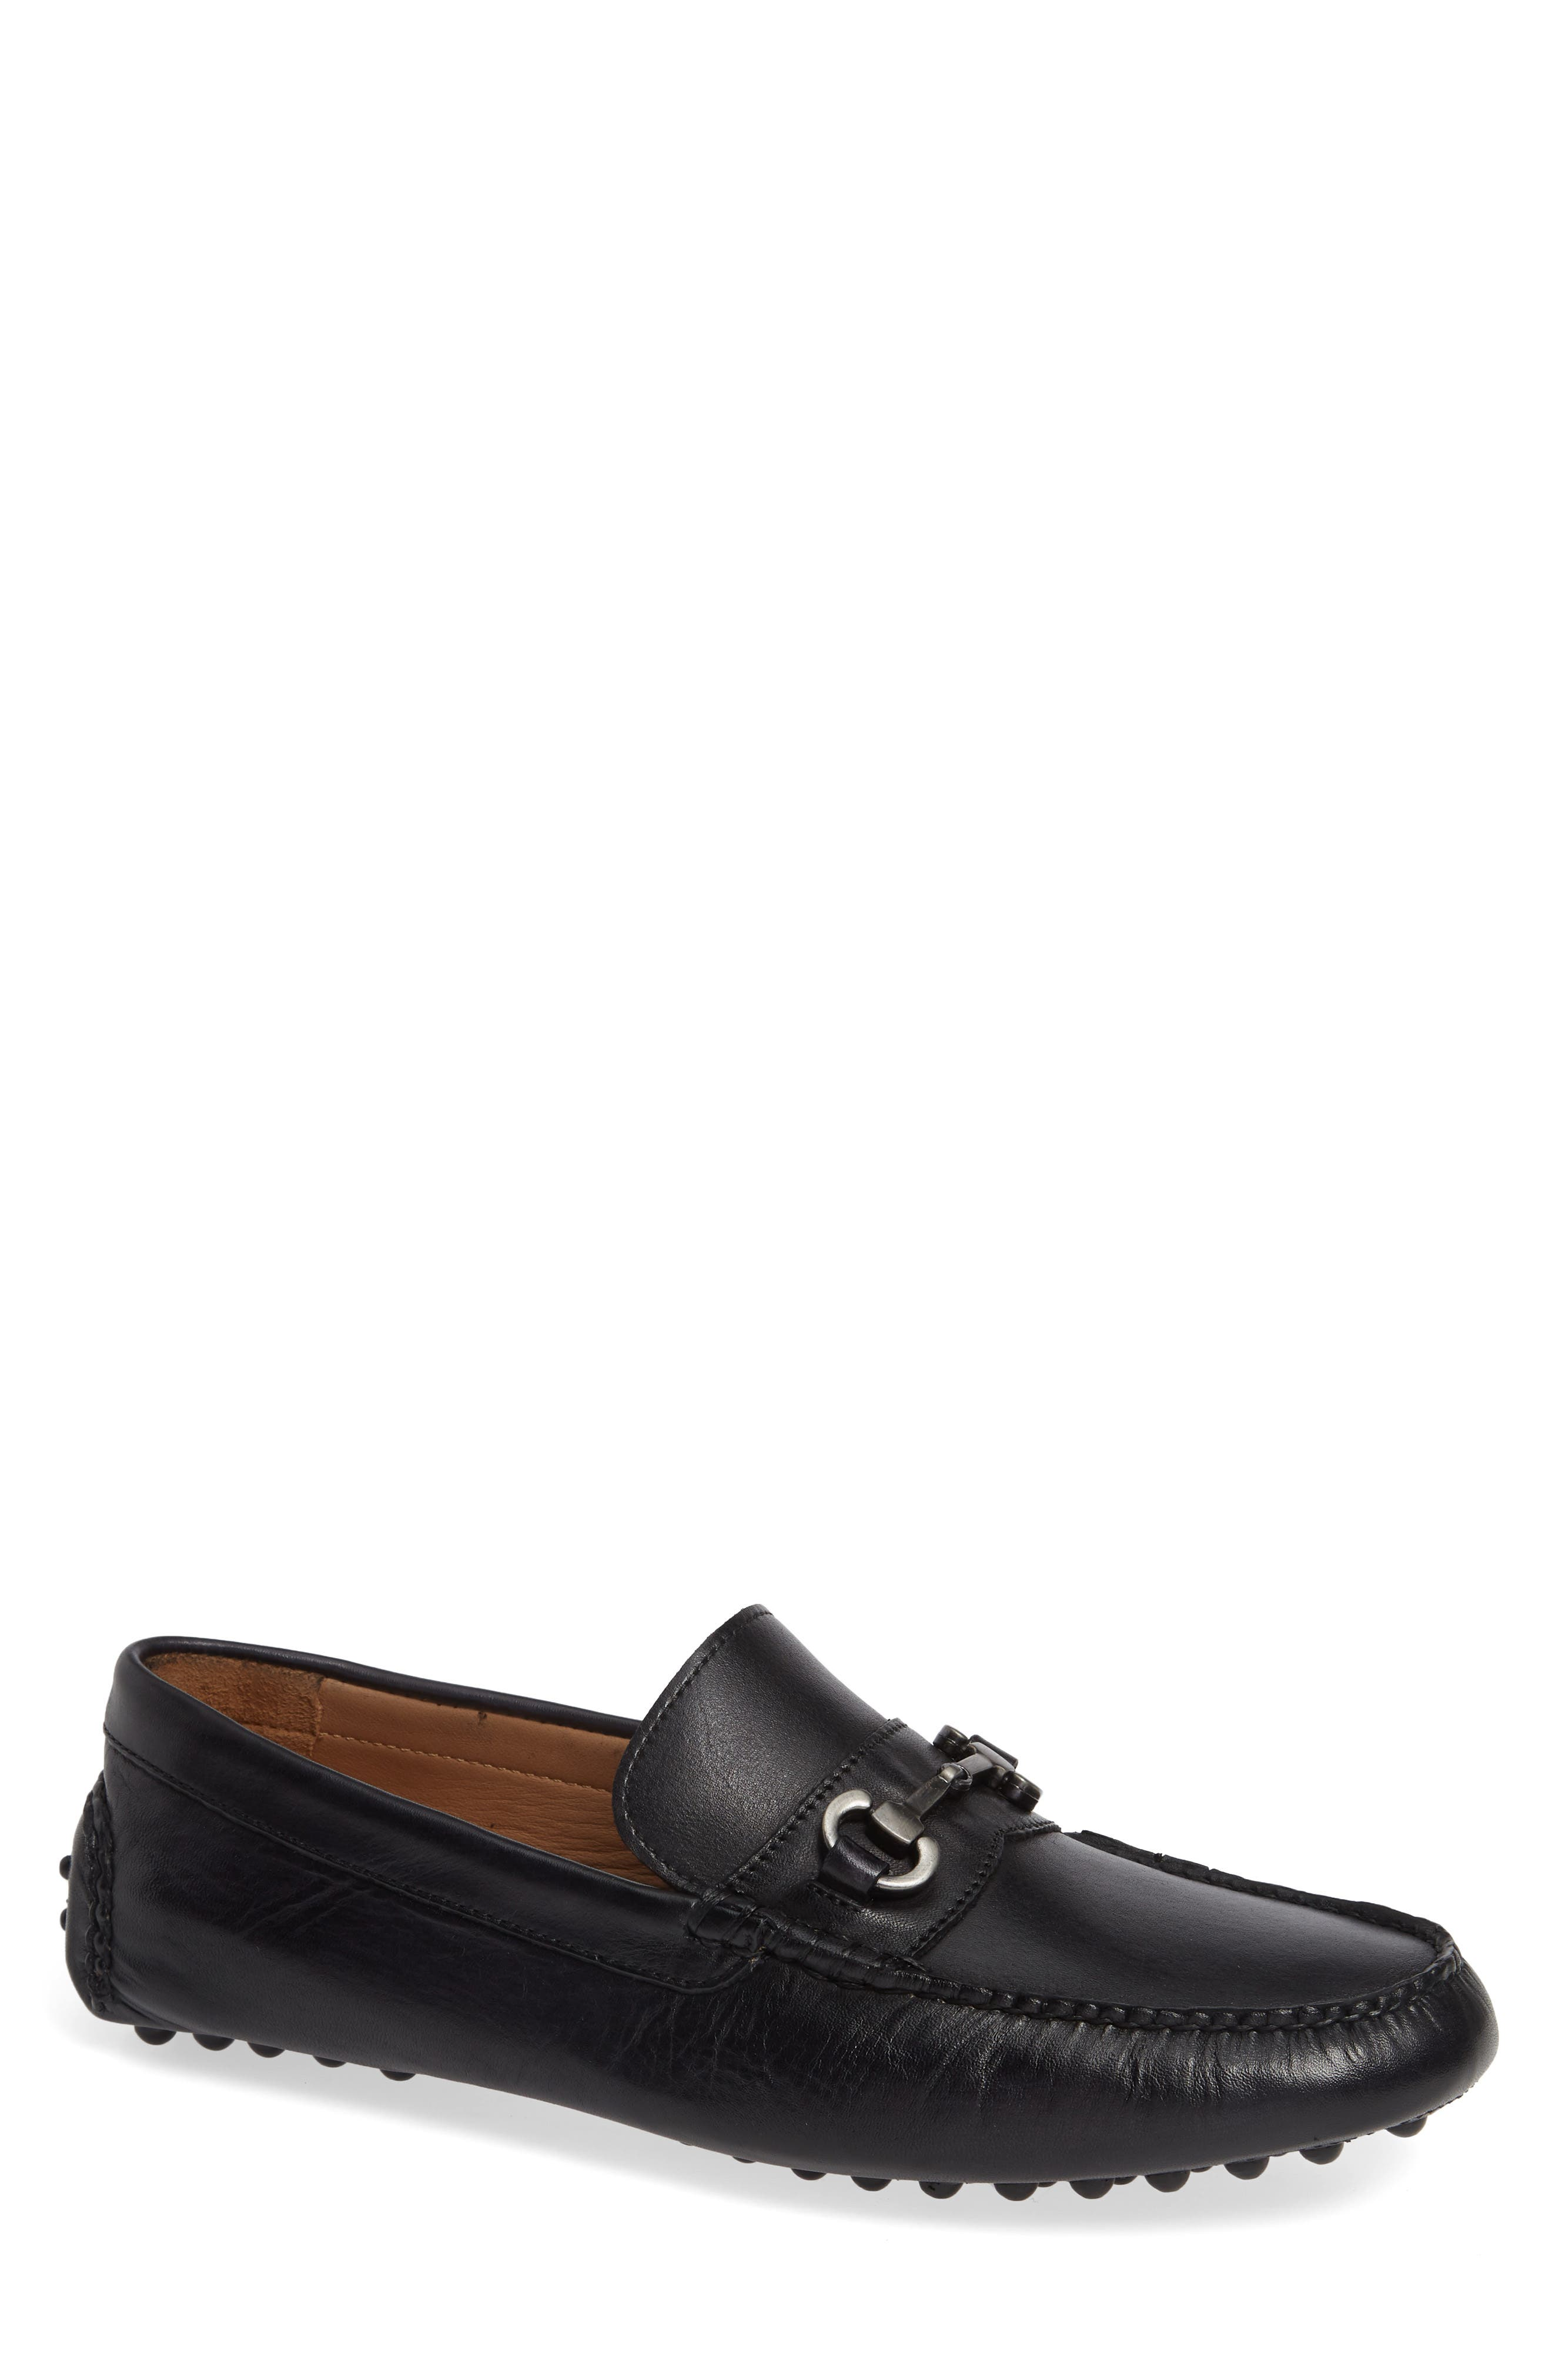 NORDSTROM MEN'S SHOP Anthony Driving Shoe, Main, color, BLACK LEATHER